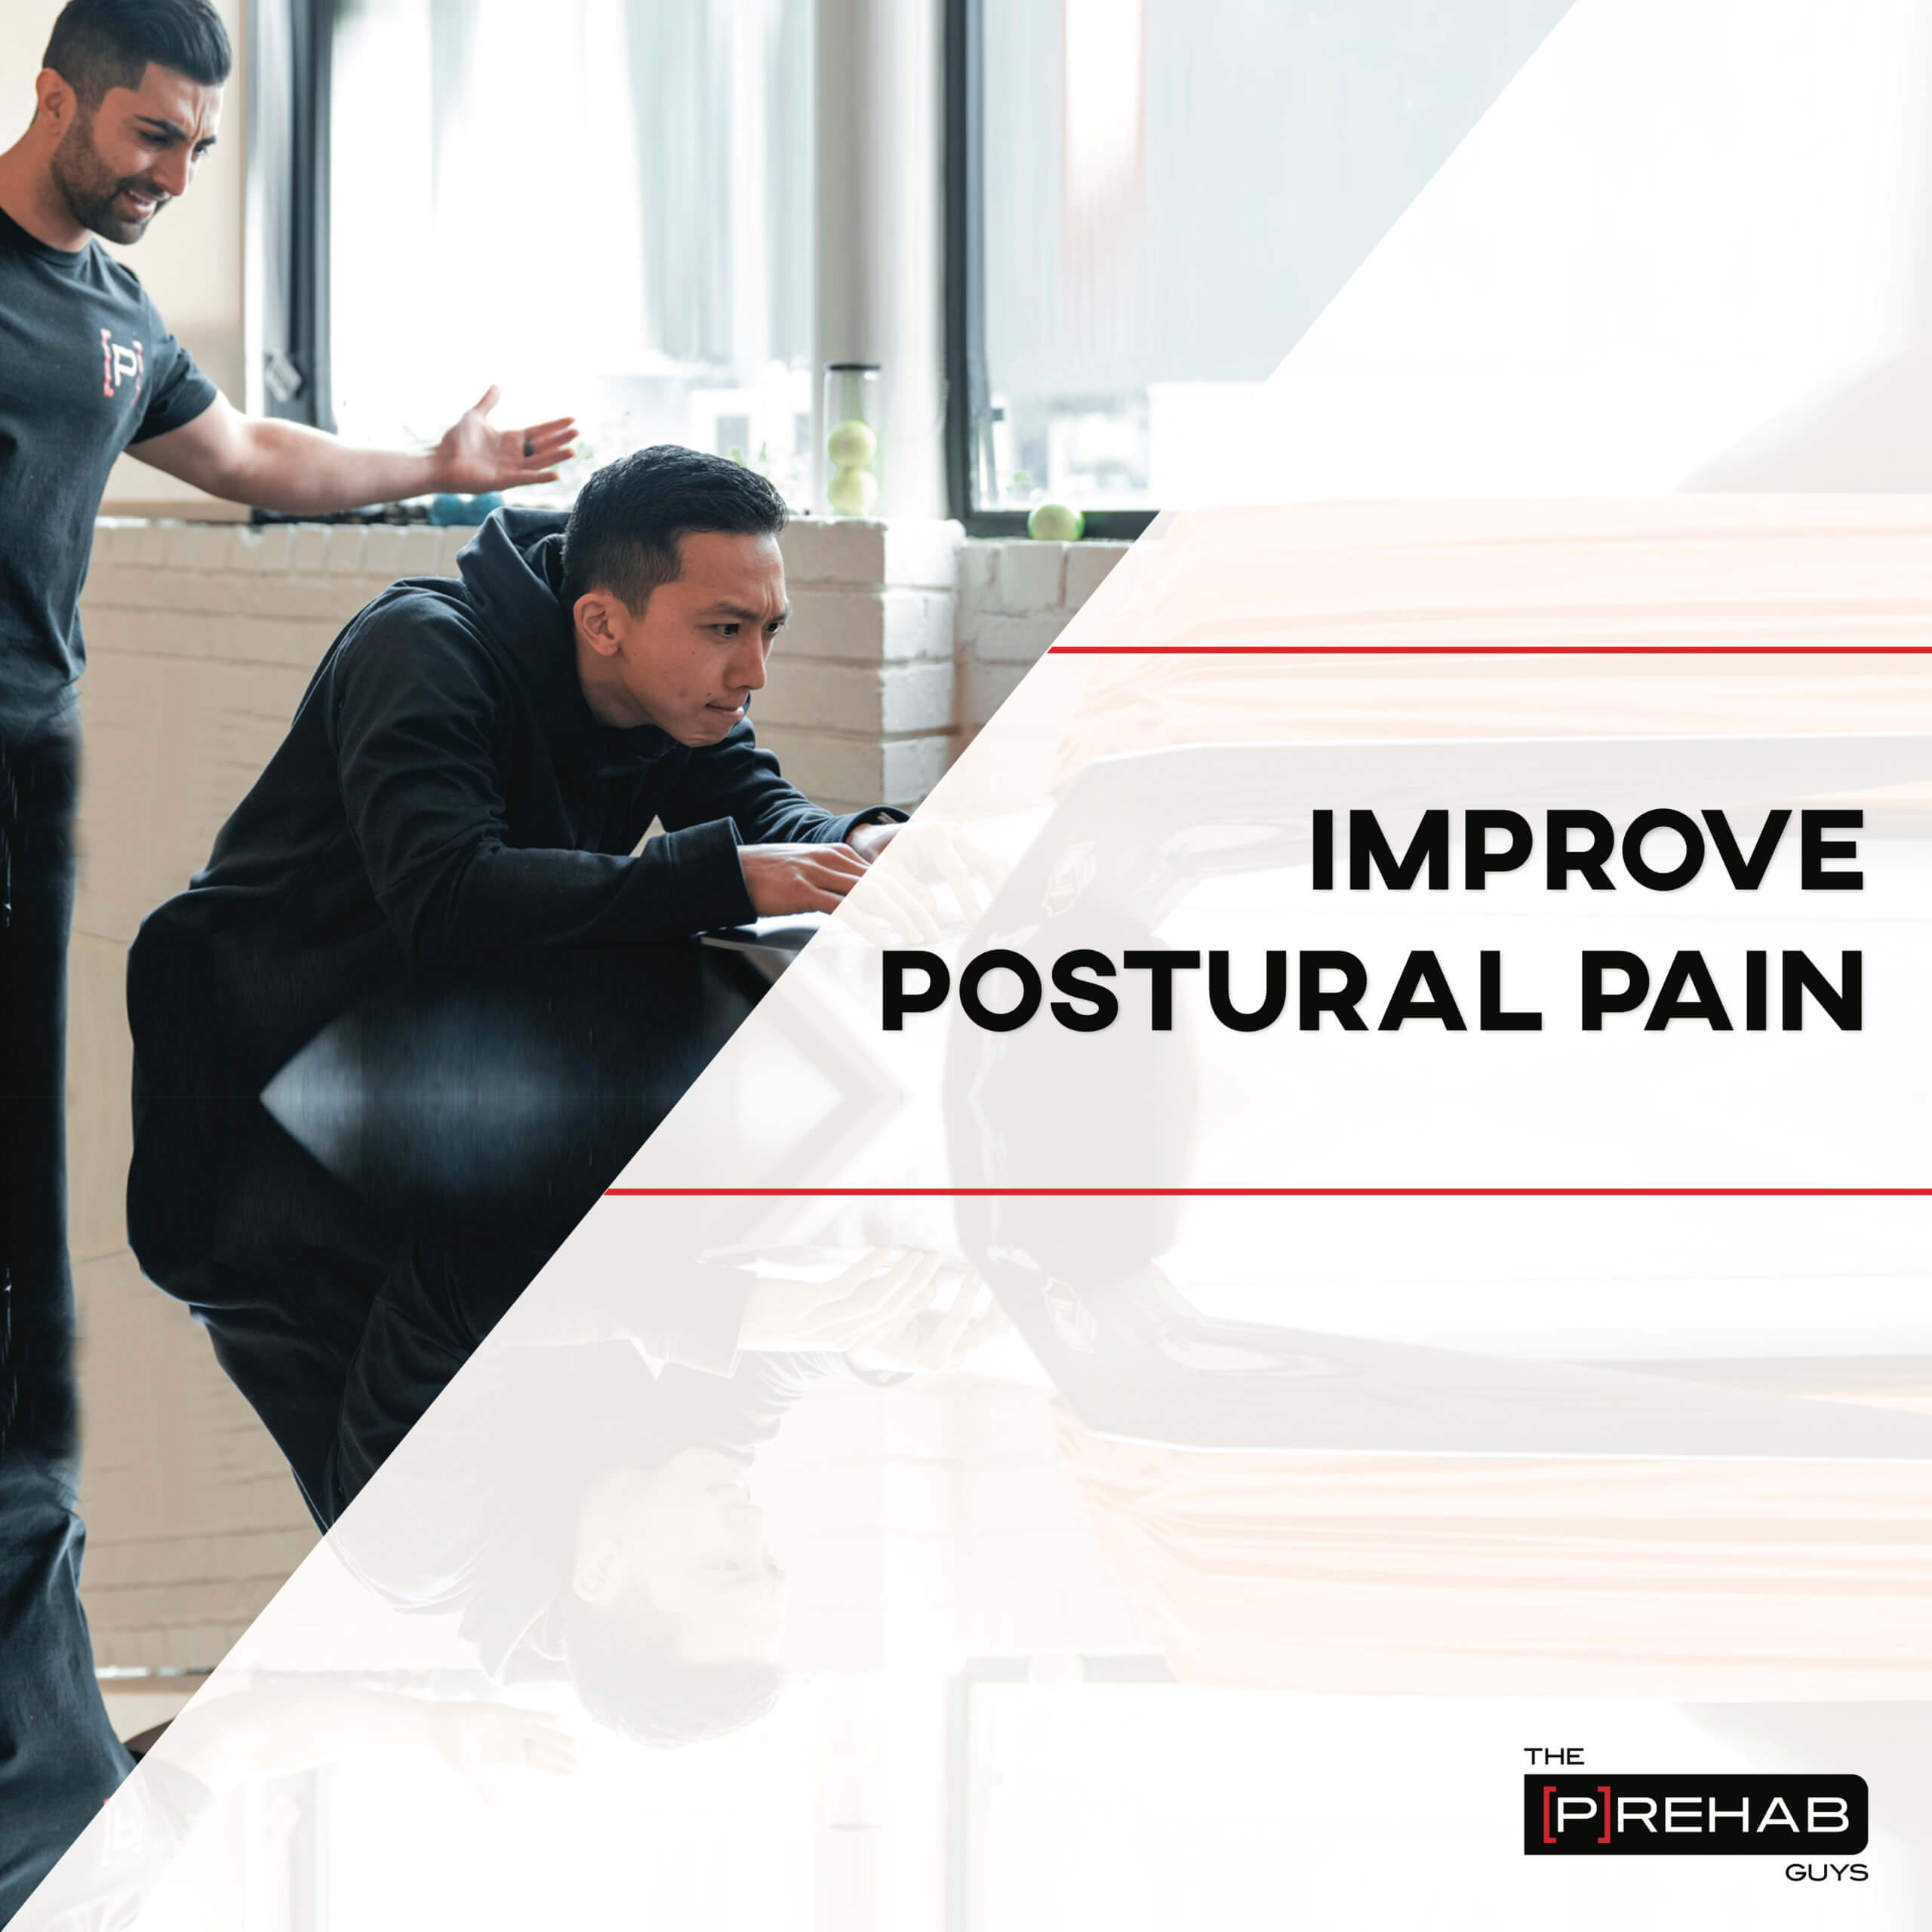 improve postural pain cervical radiculopathy treatment the prehab guys